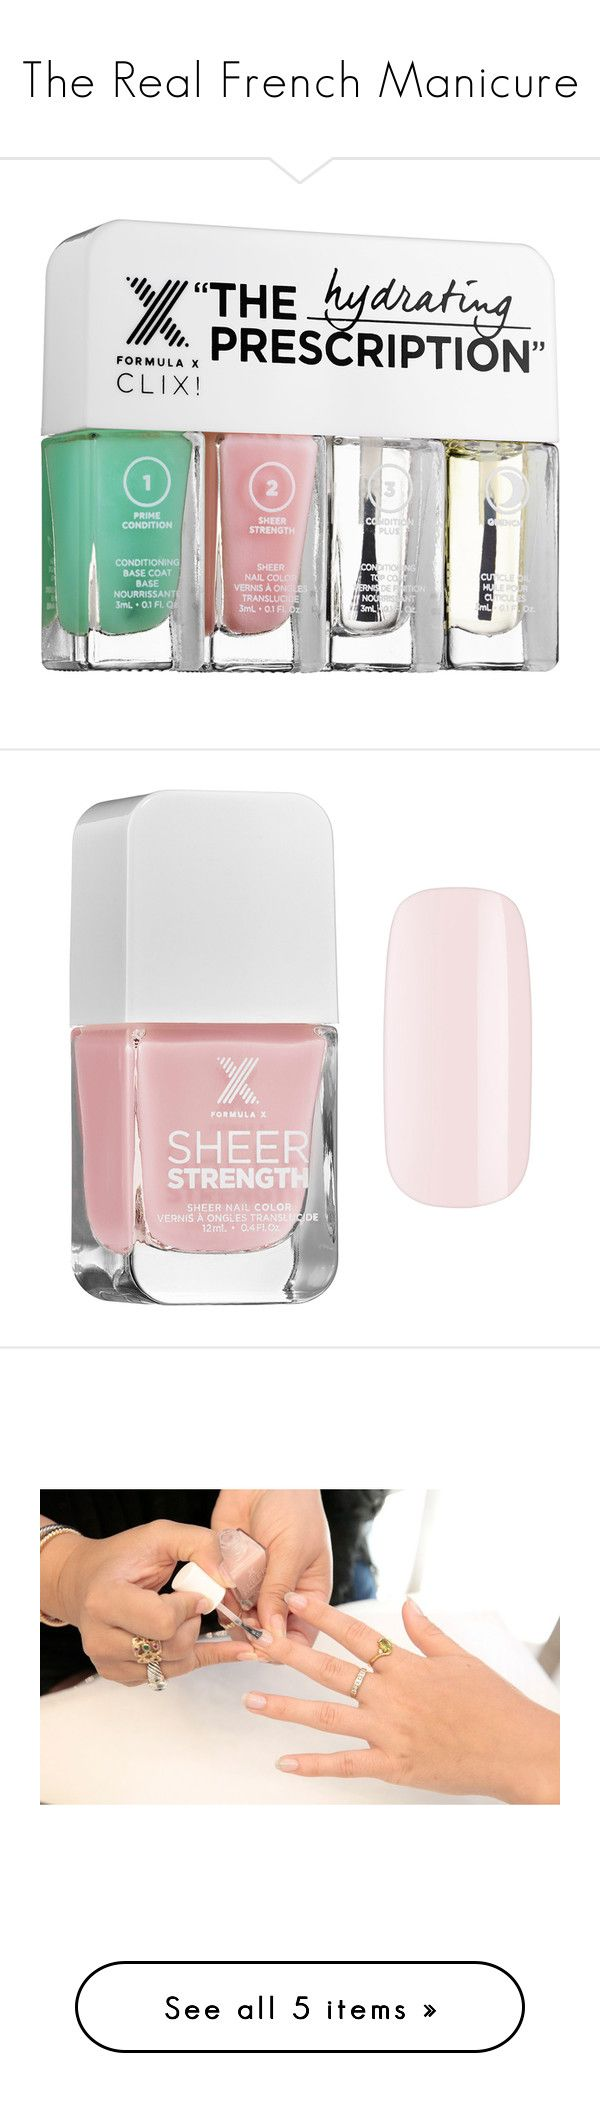 """""""The Real French Manicure"""" by polyvore-editorial ❤ liked on Polyvore featuring polishingofftheweek, newnownails, realfrenchmanicure, beauty, Formula X, beauty products, nail care, nail treatments, nail polish and nails"""